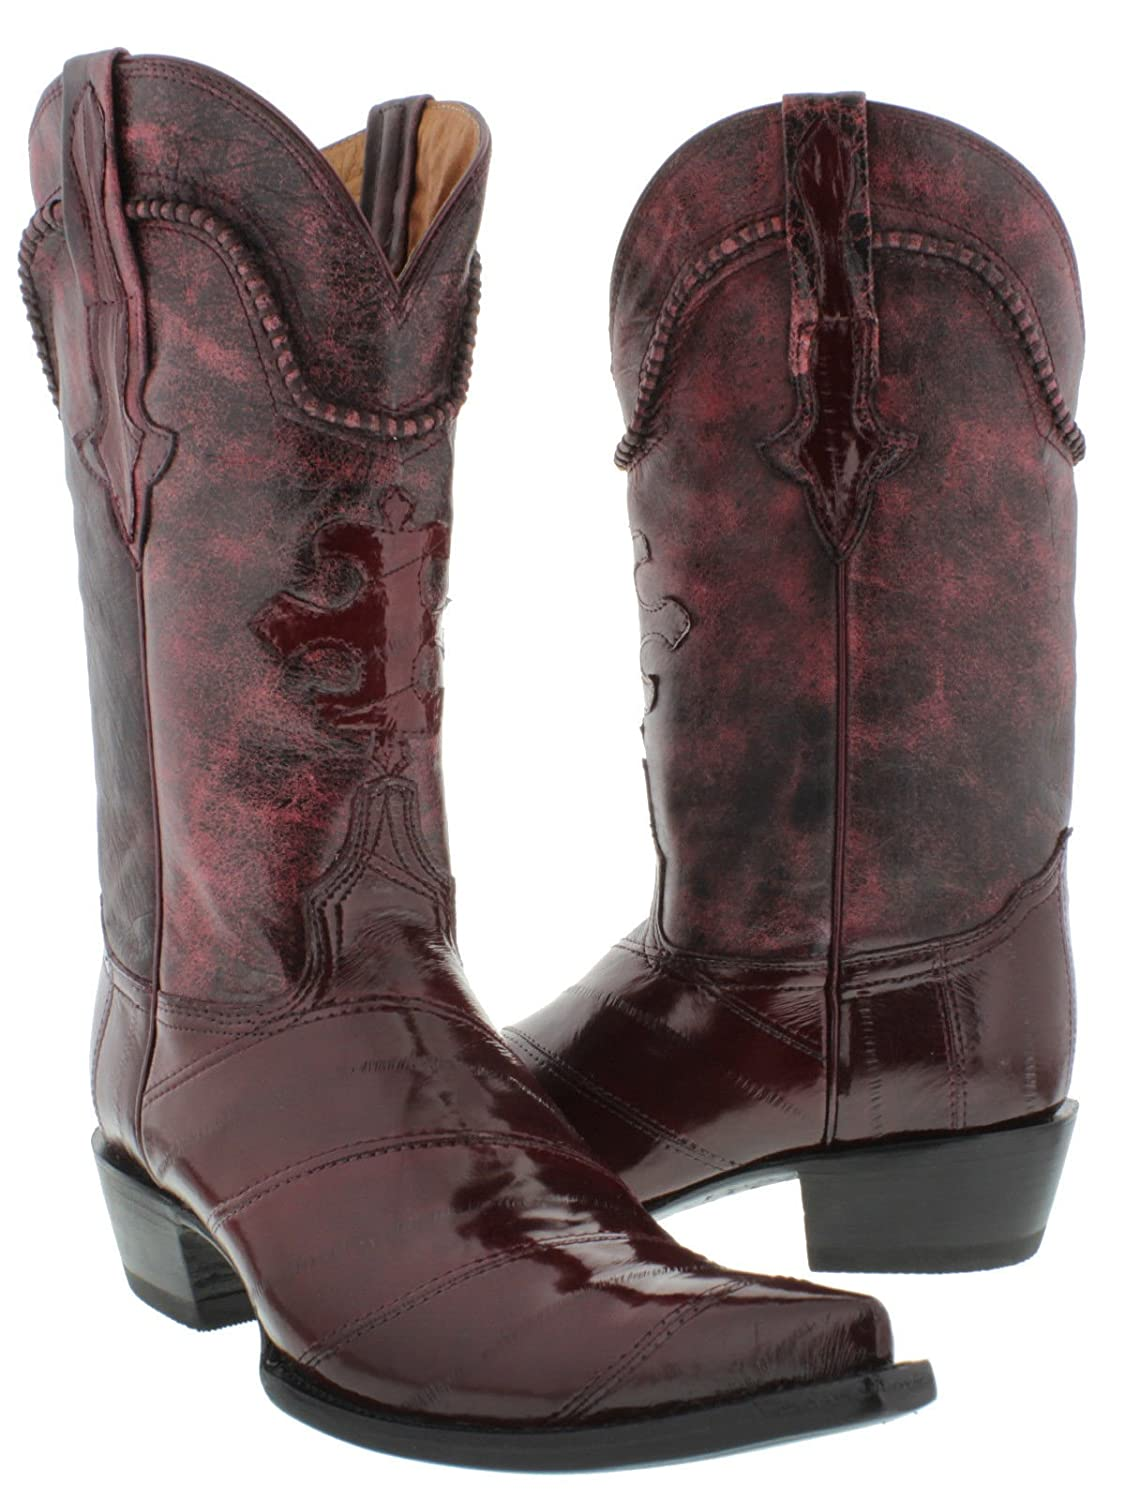 Cowboy Professional - Men's Burgundy Genuine EEL Skin Leather Cowboy Boots 3X Toe